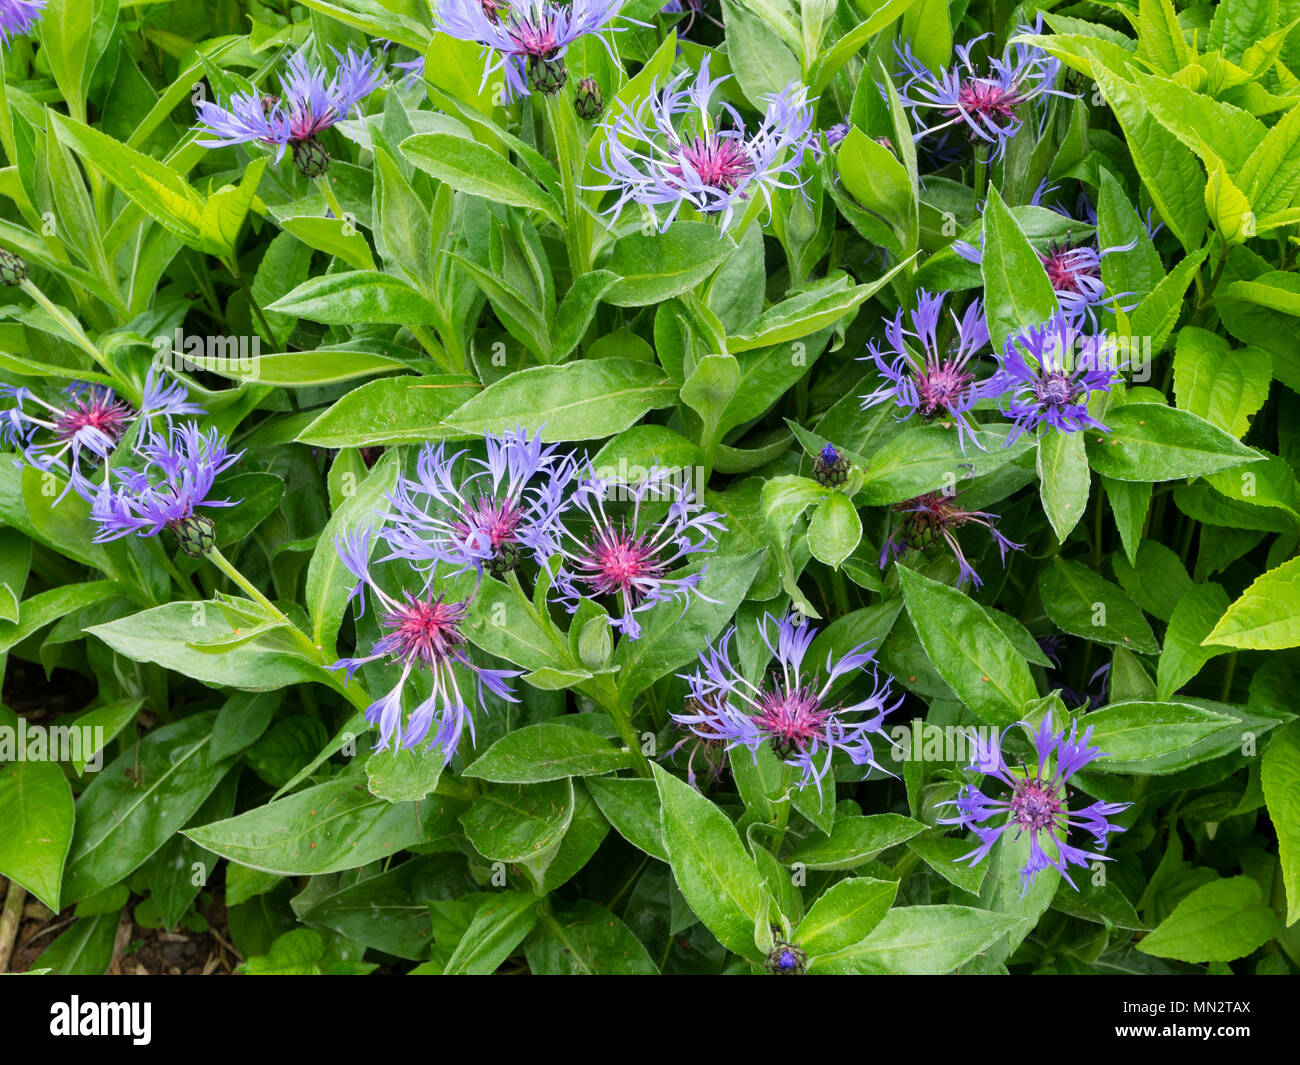 Blue Flowers With A Reddish Center Of The Cottage Garden Perennial